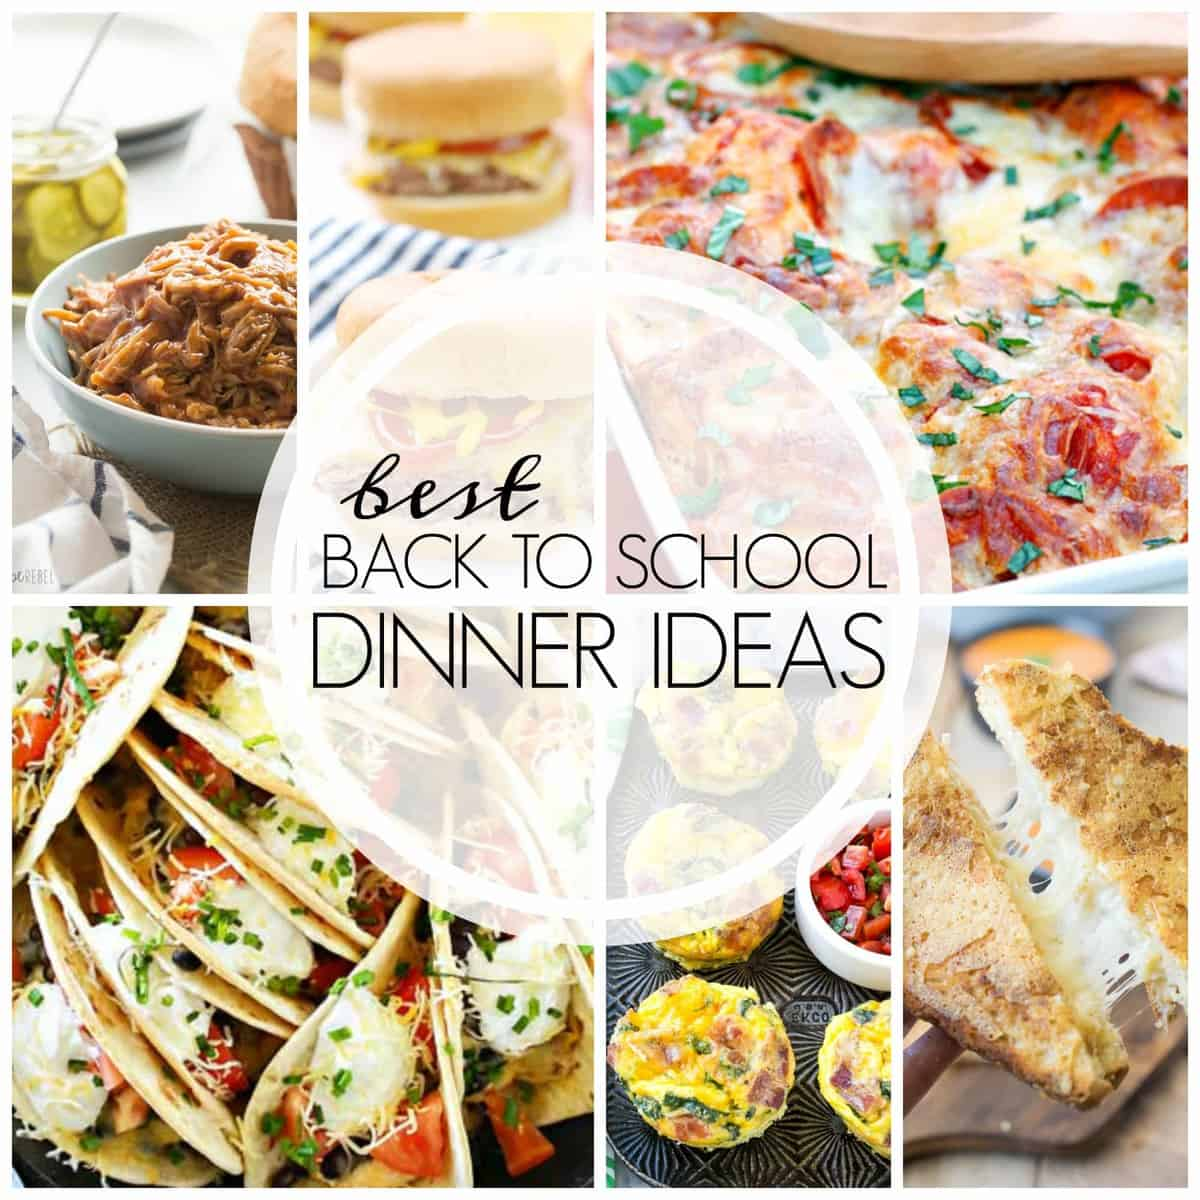 I'm sharing over 20 Easy Dinner Recipes that your family will love, especially during this busy time of year when school and sports dominate your schedule!